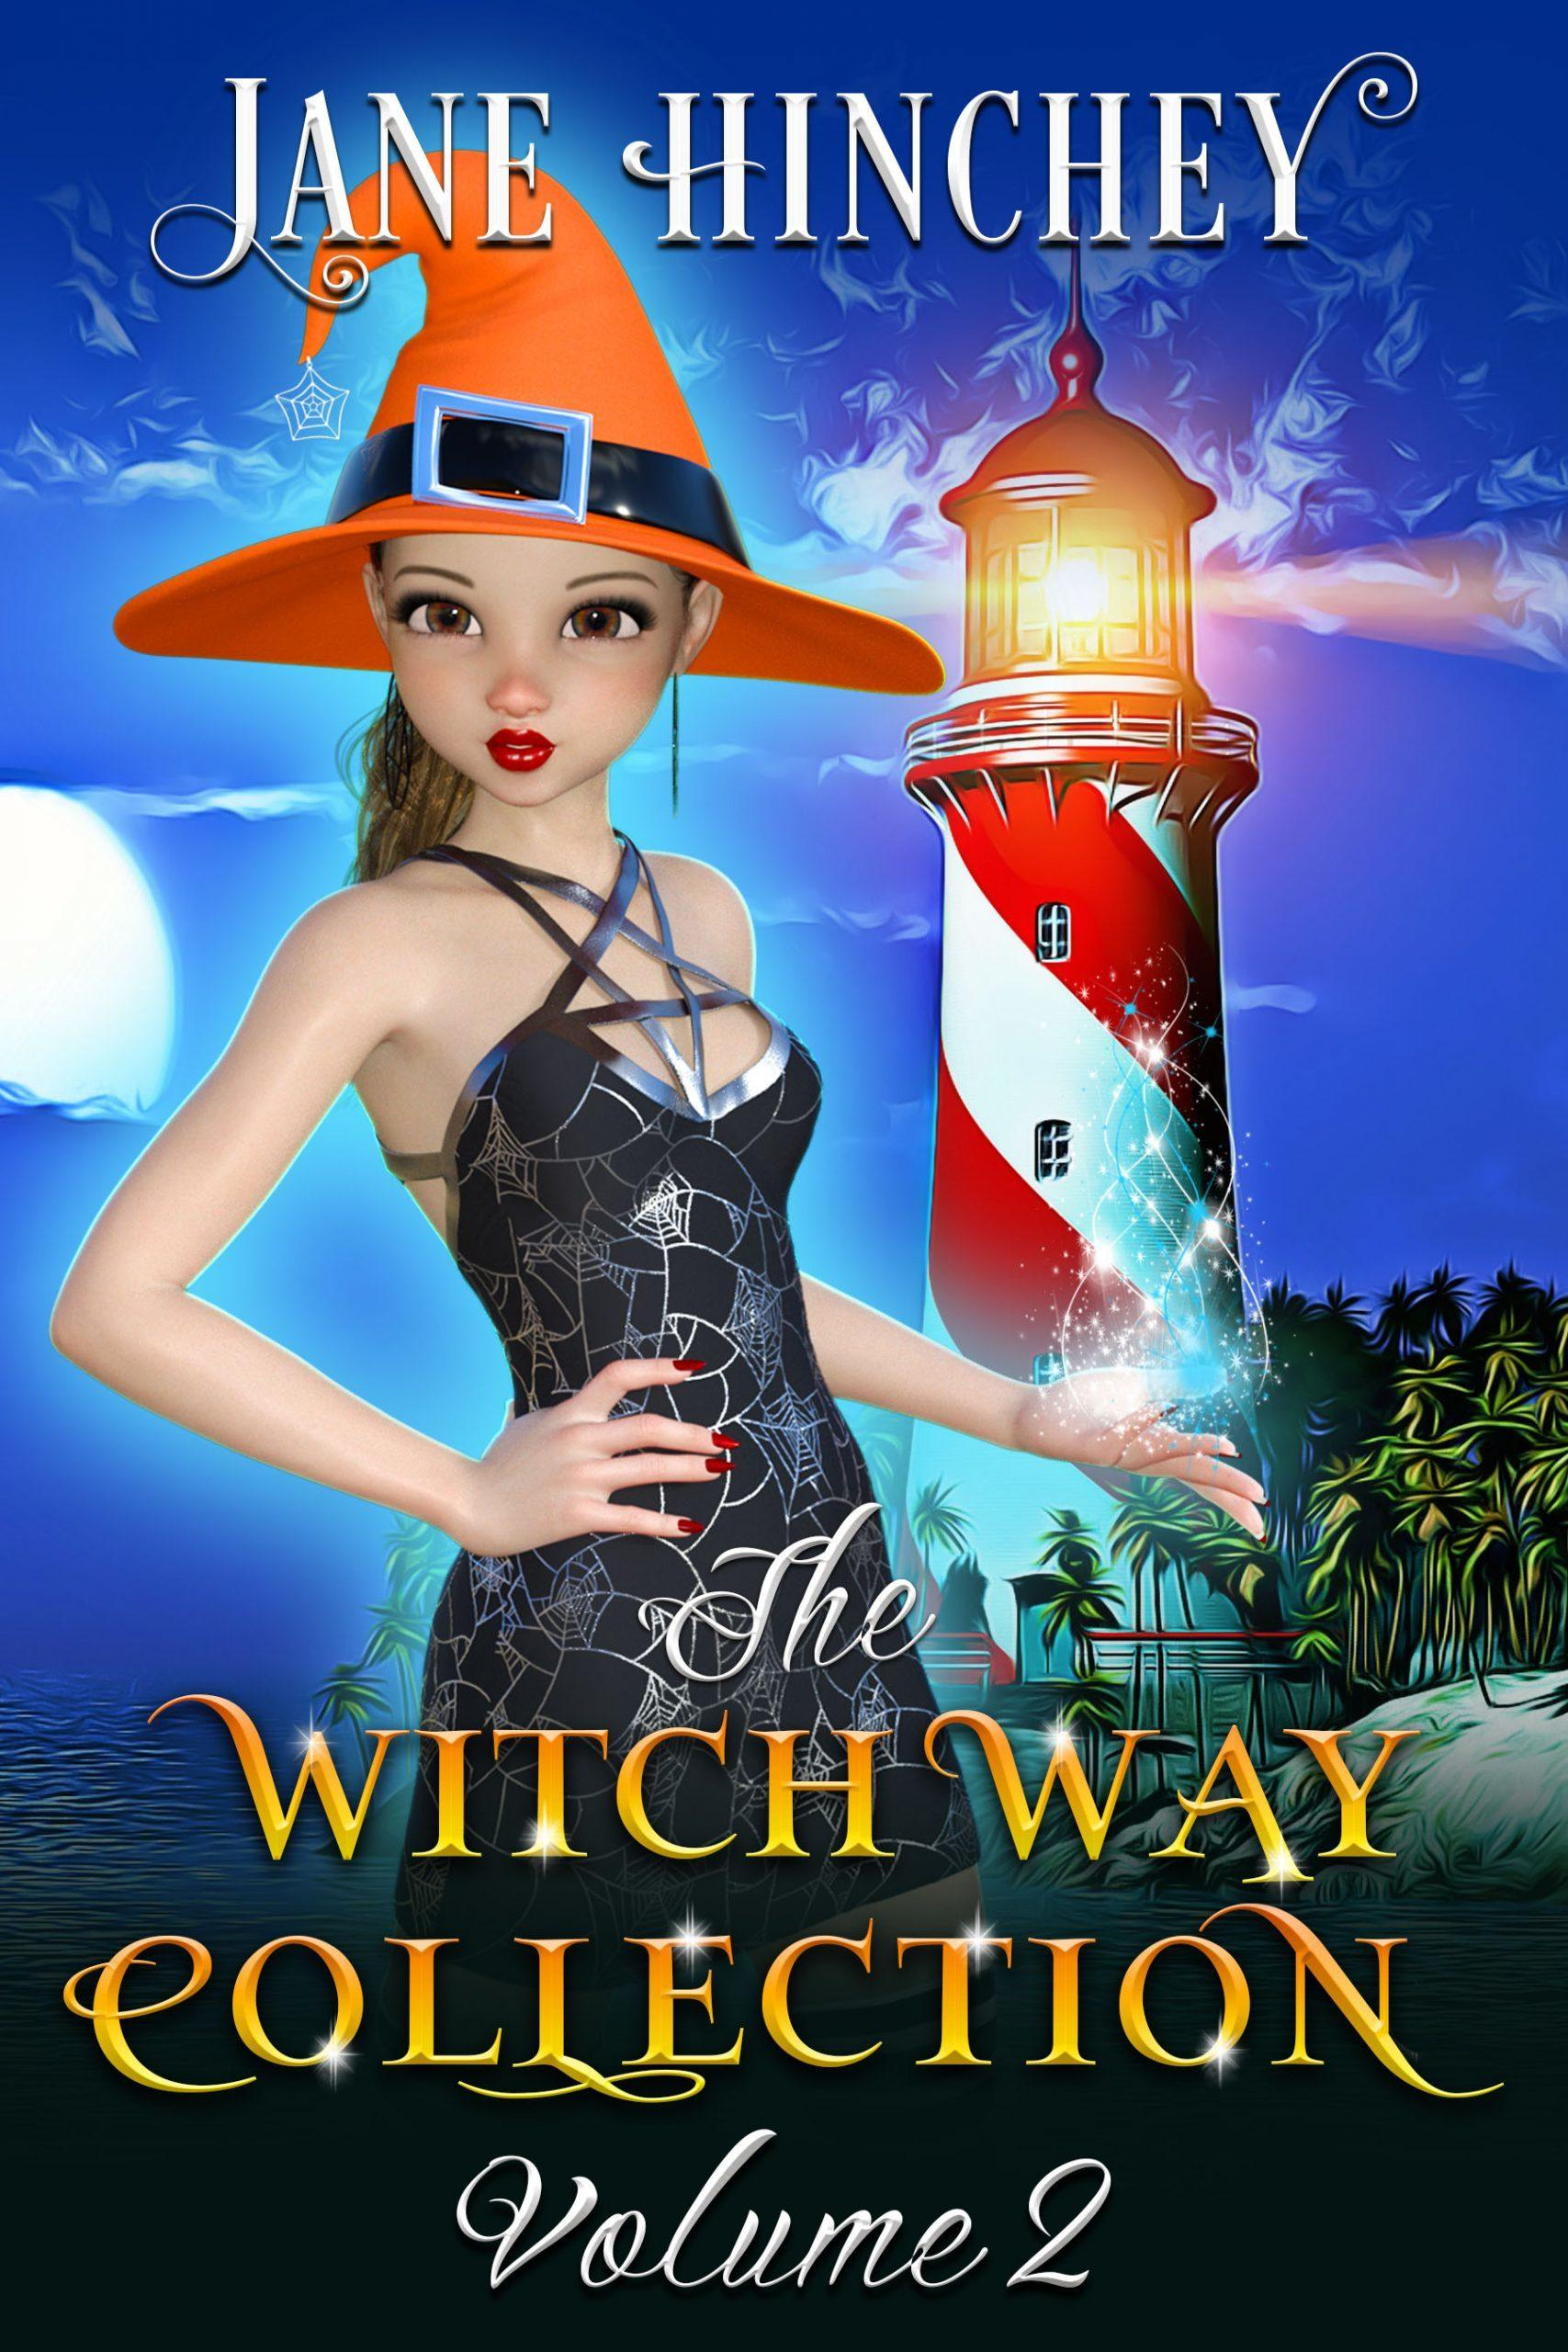 Books 4-6 in the Witch Way Series